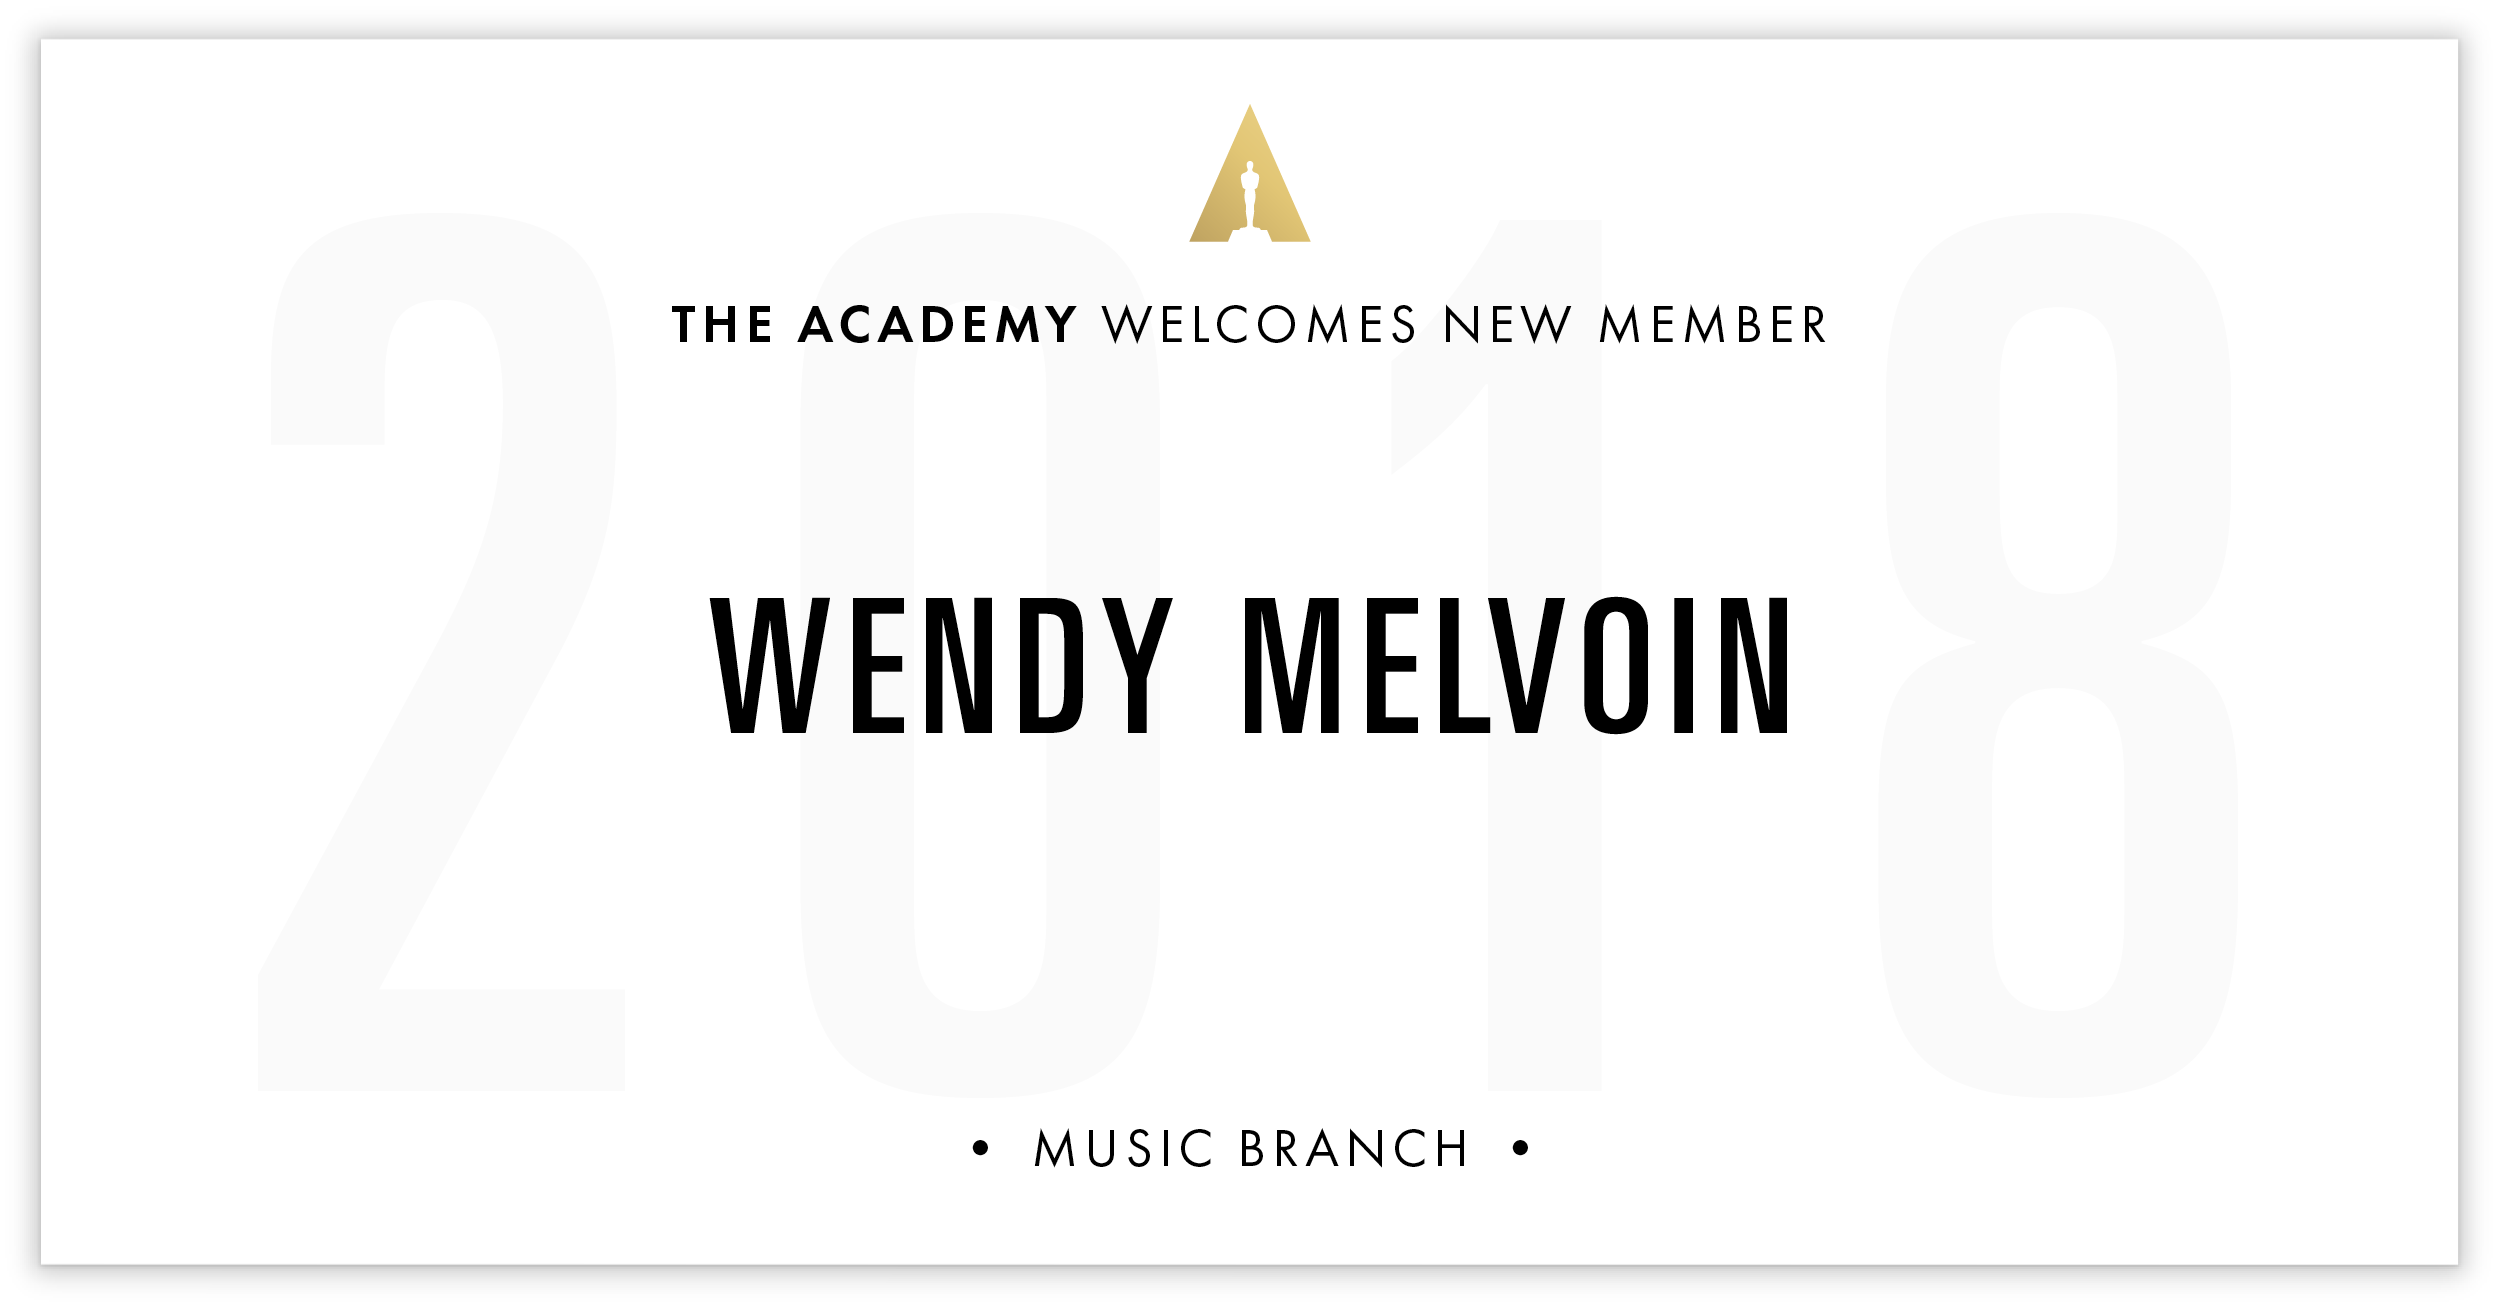 Wendy Melvoin is invited!